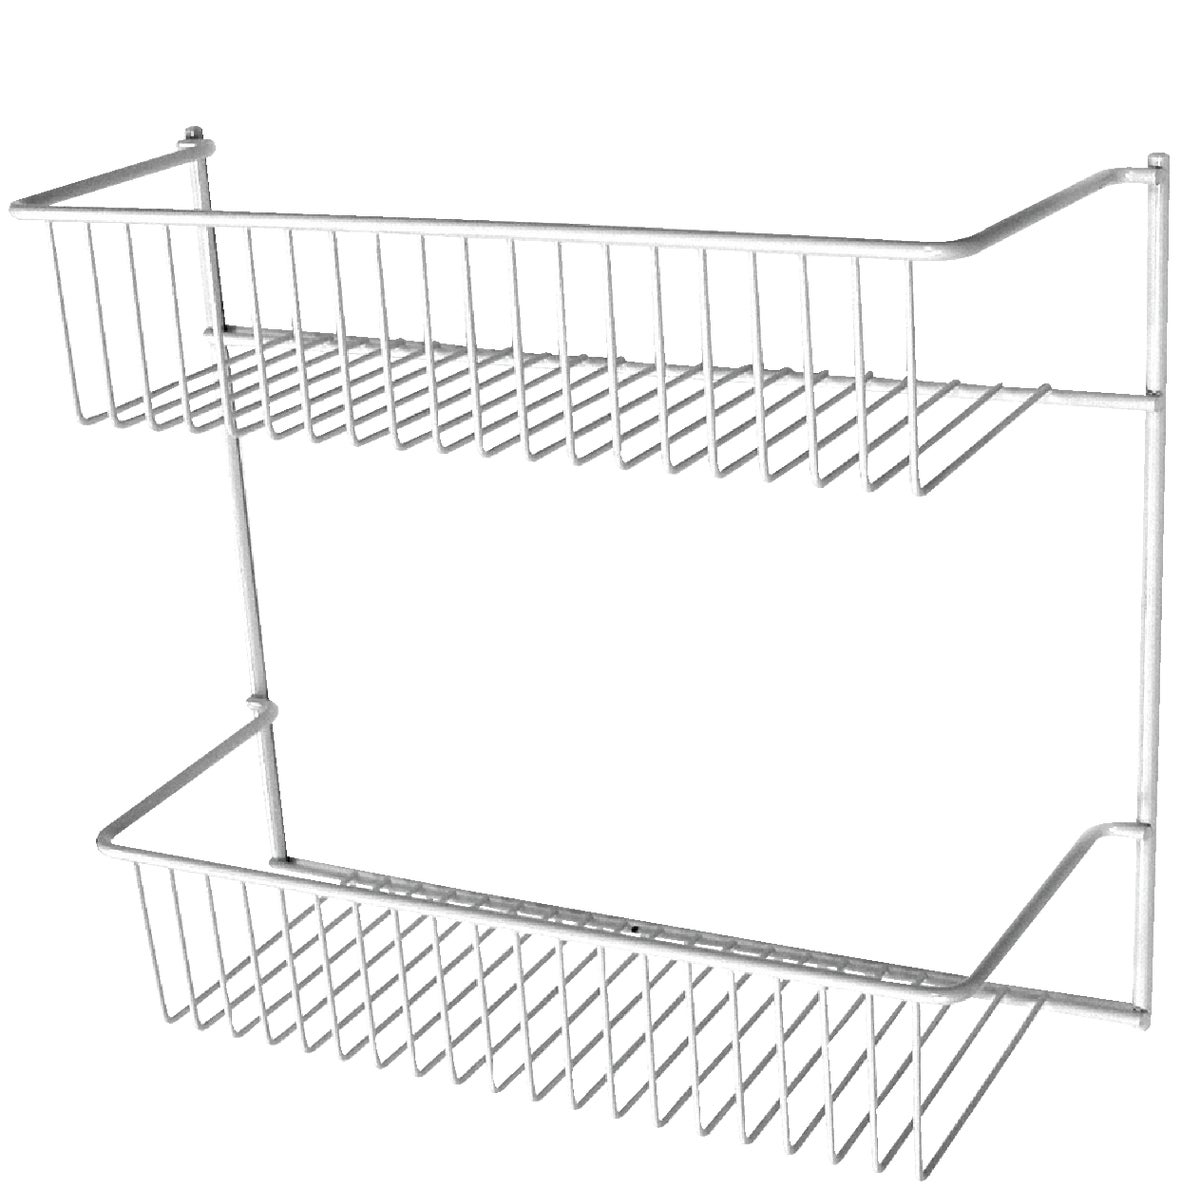 2-TIER WALL STORAGE RACK